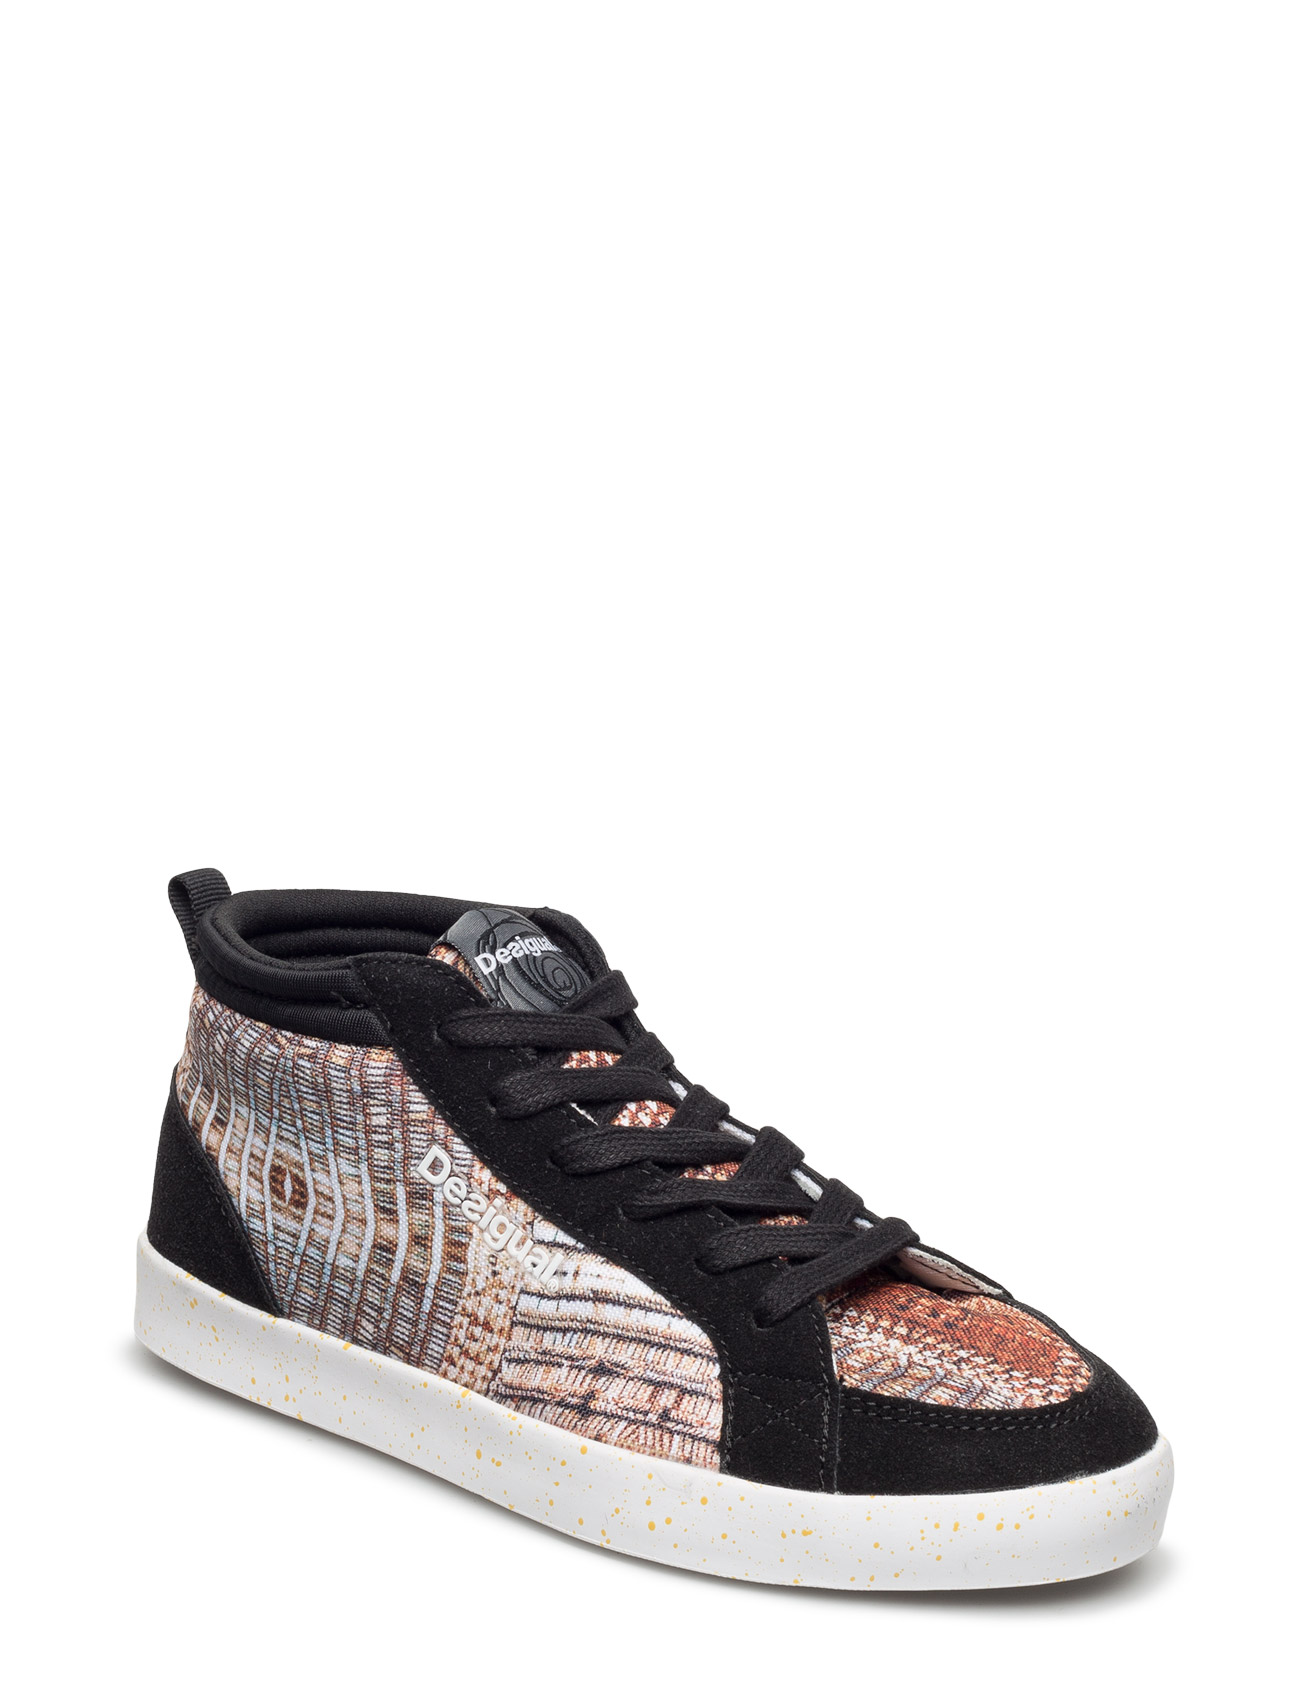 Shoes Classic Mid G Desigual Shoes Sneakers til Damer i